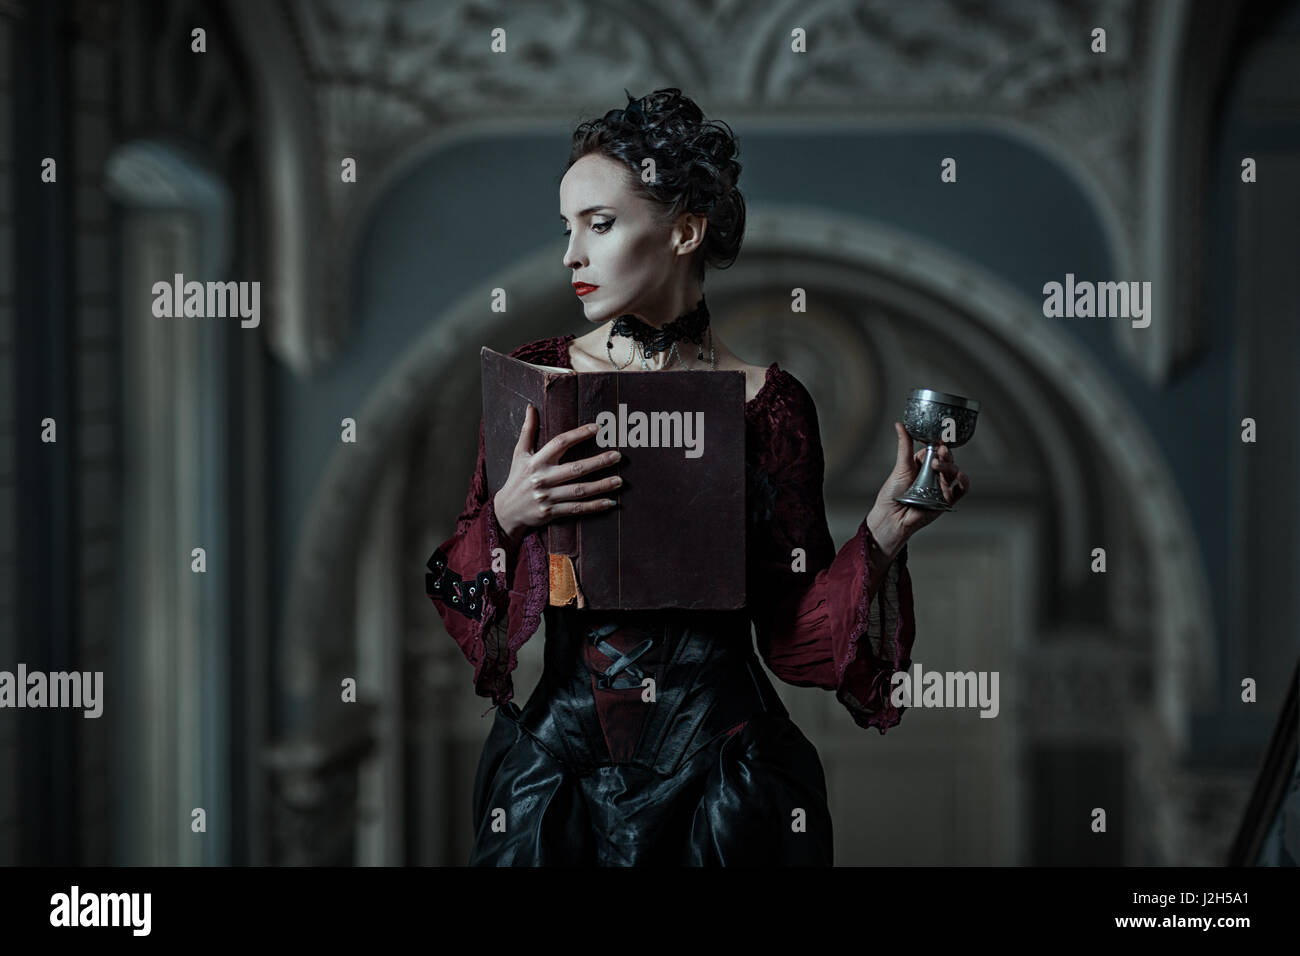 Mystic woman with book and cup in the Gothic style. - Stock Image